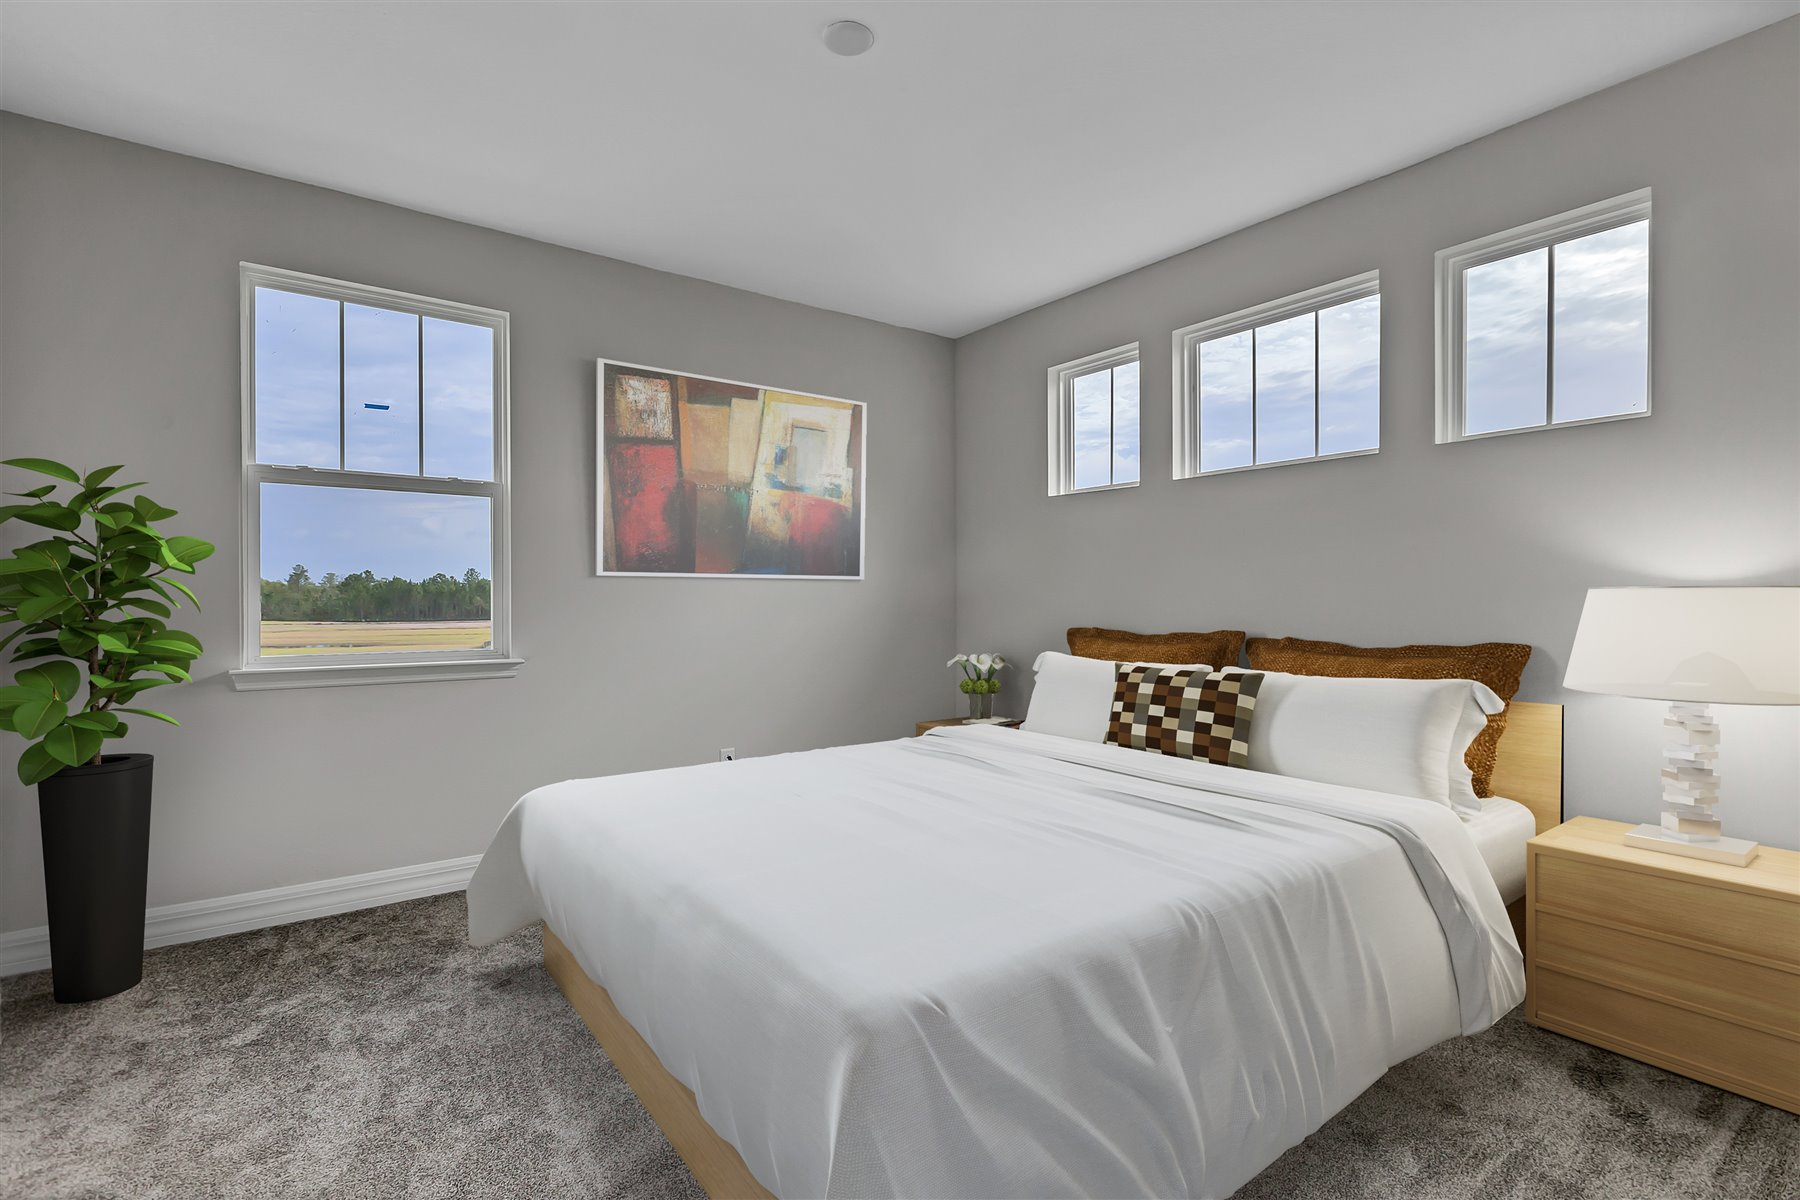 Watermark II Plan Bedroom at Meridian Parks in Orlando Florida by Mattamy Homes